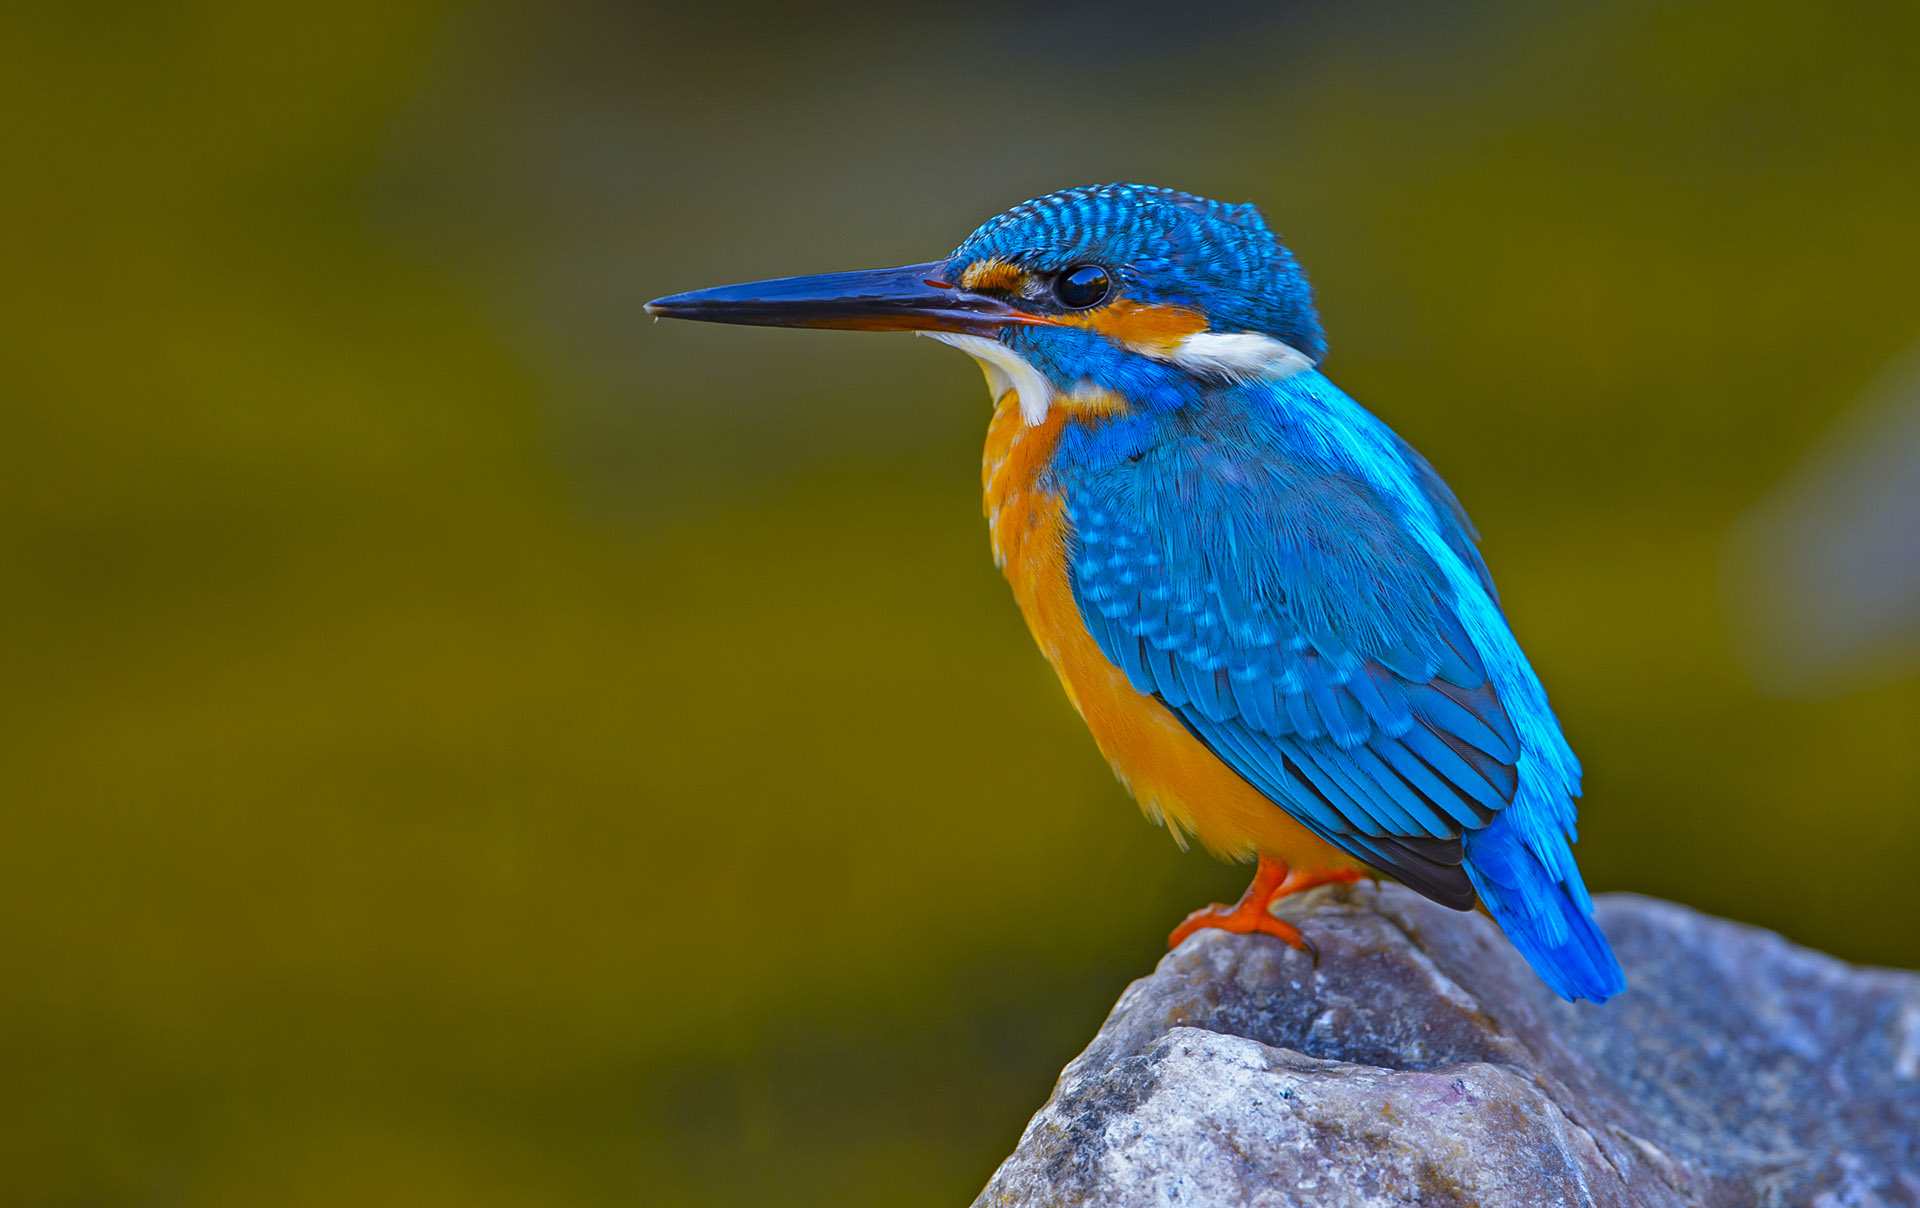 Common Kingfisher: The Bolt of Blue